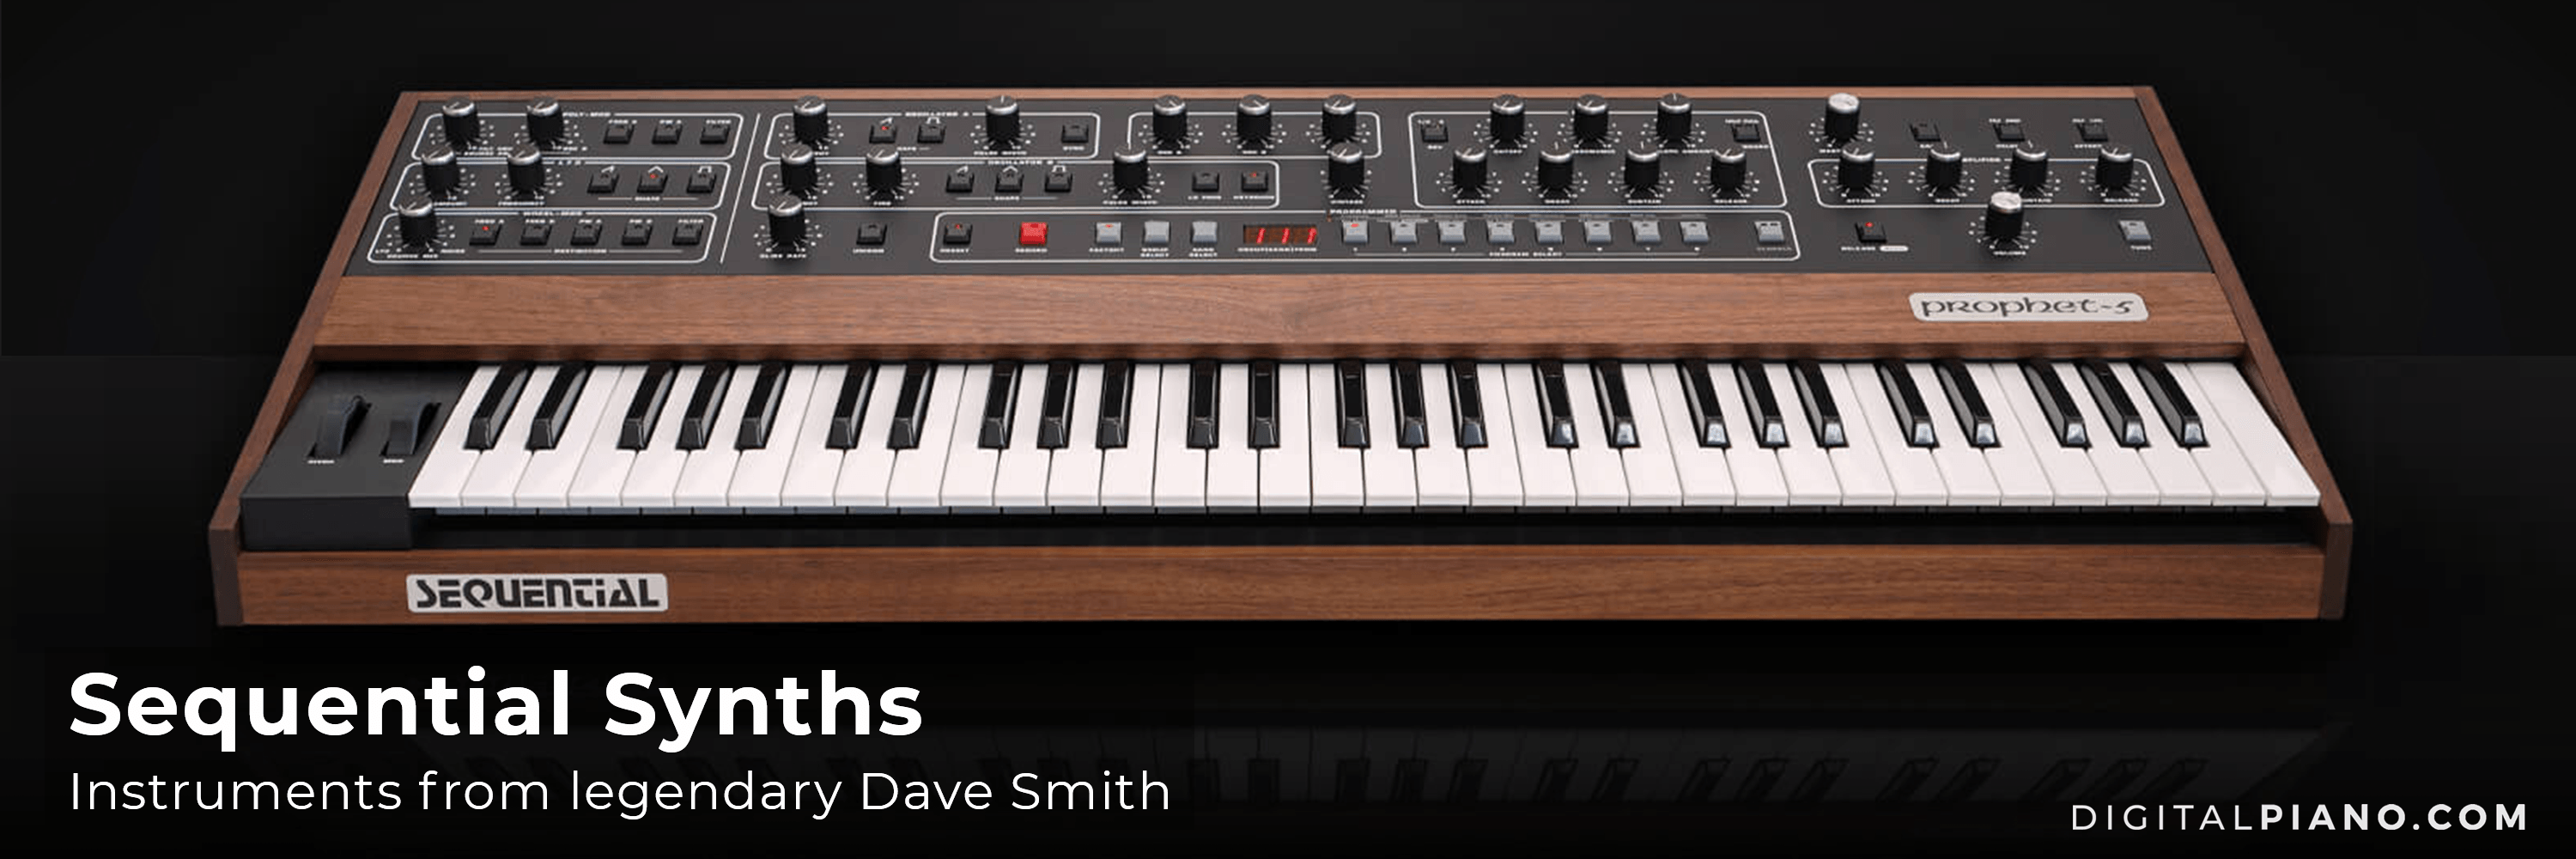 Say hello to Dave Smith Sequential Synthesizers!